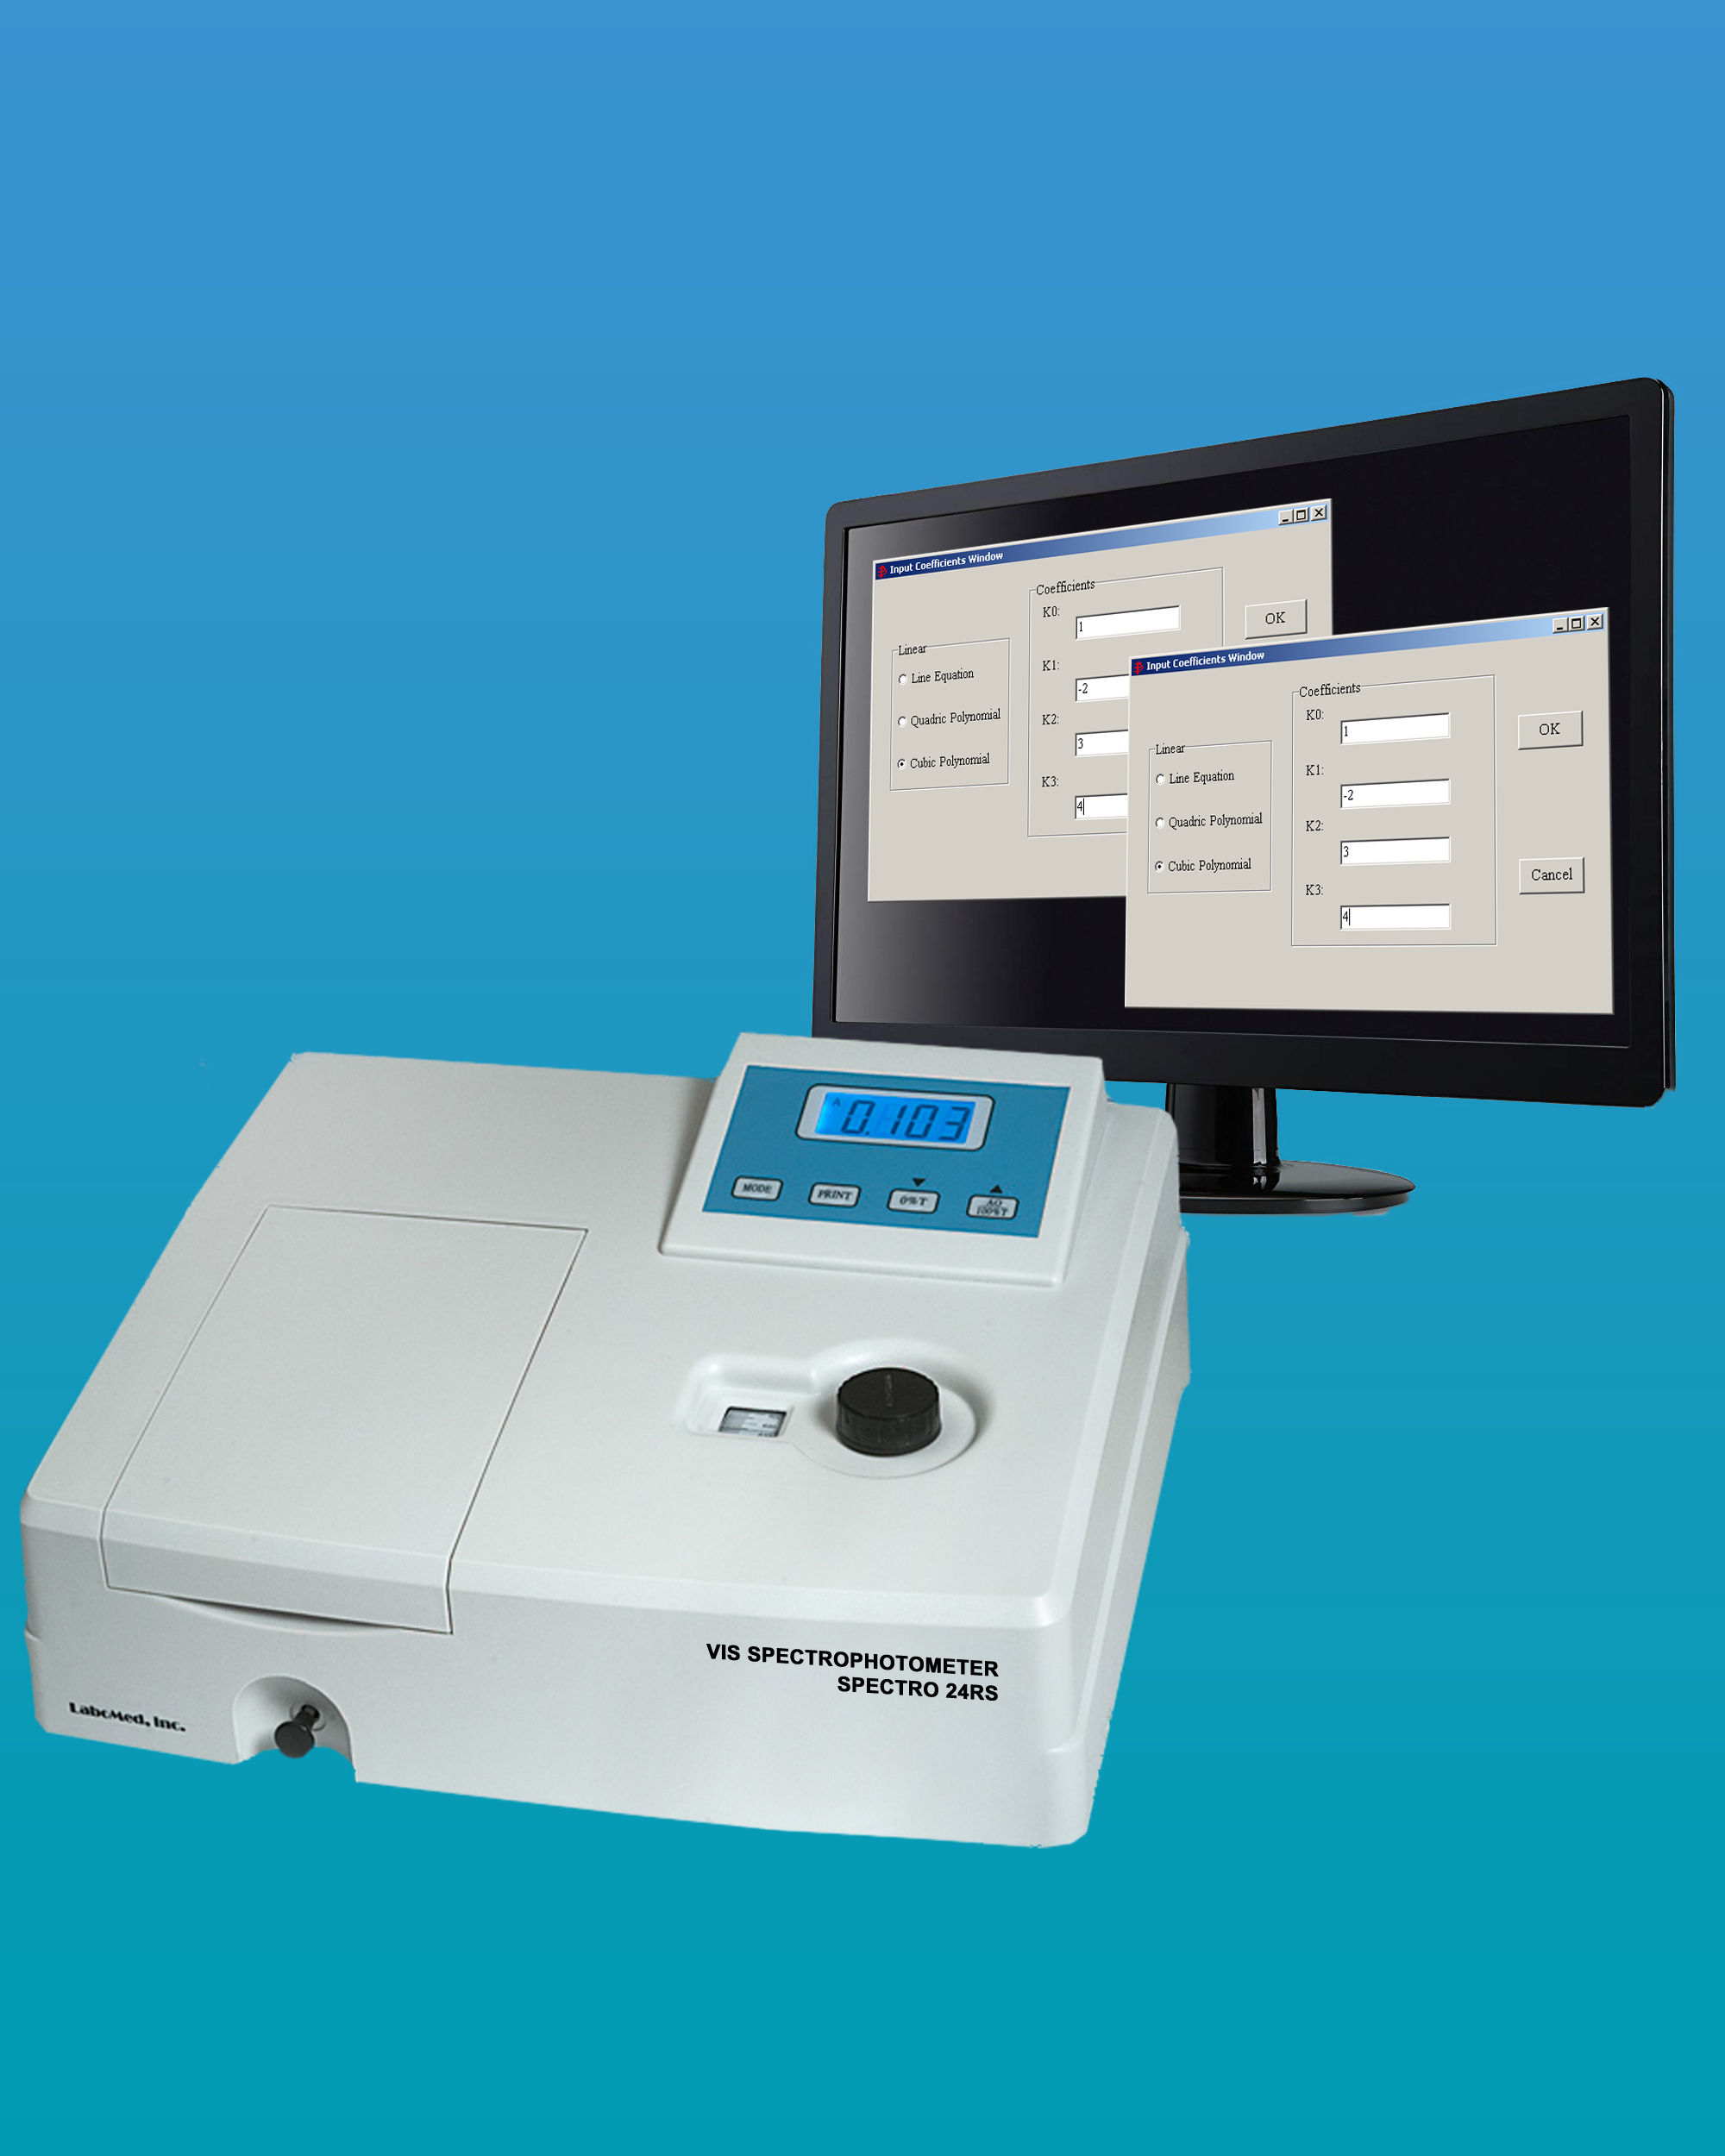 [24RS] Visible Spectrophotometer w/ Multiple Cell Holders